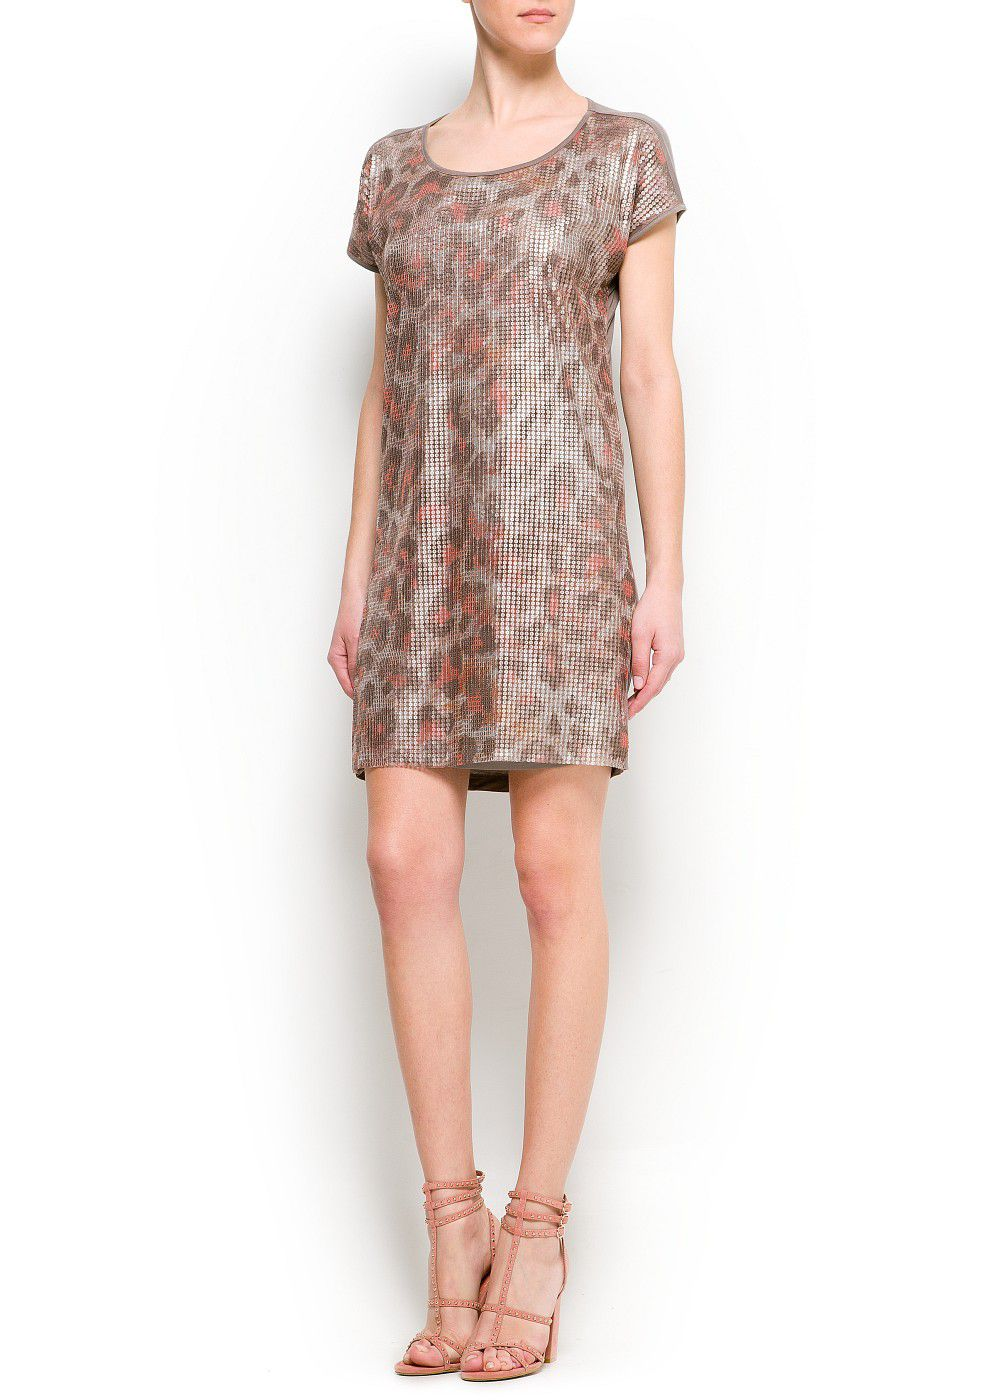 Animal print sequins dress